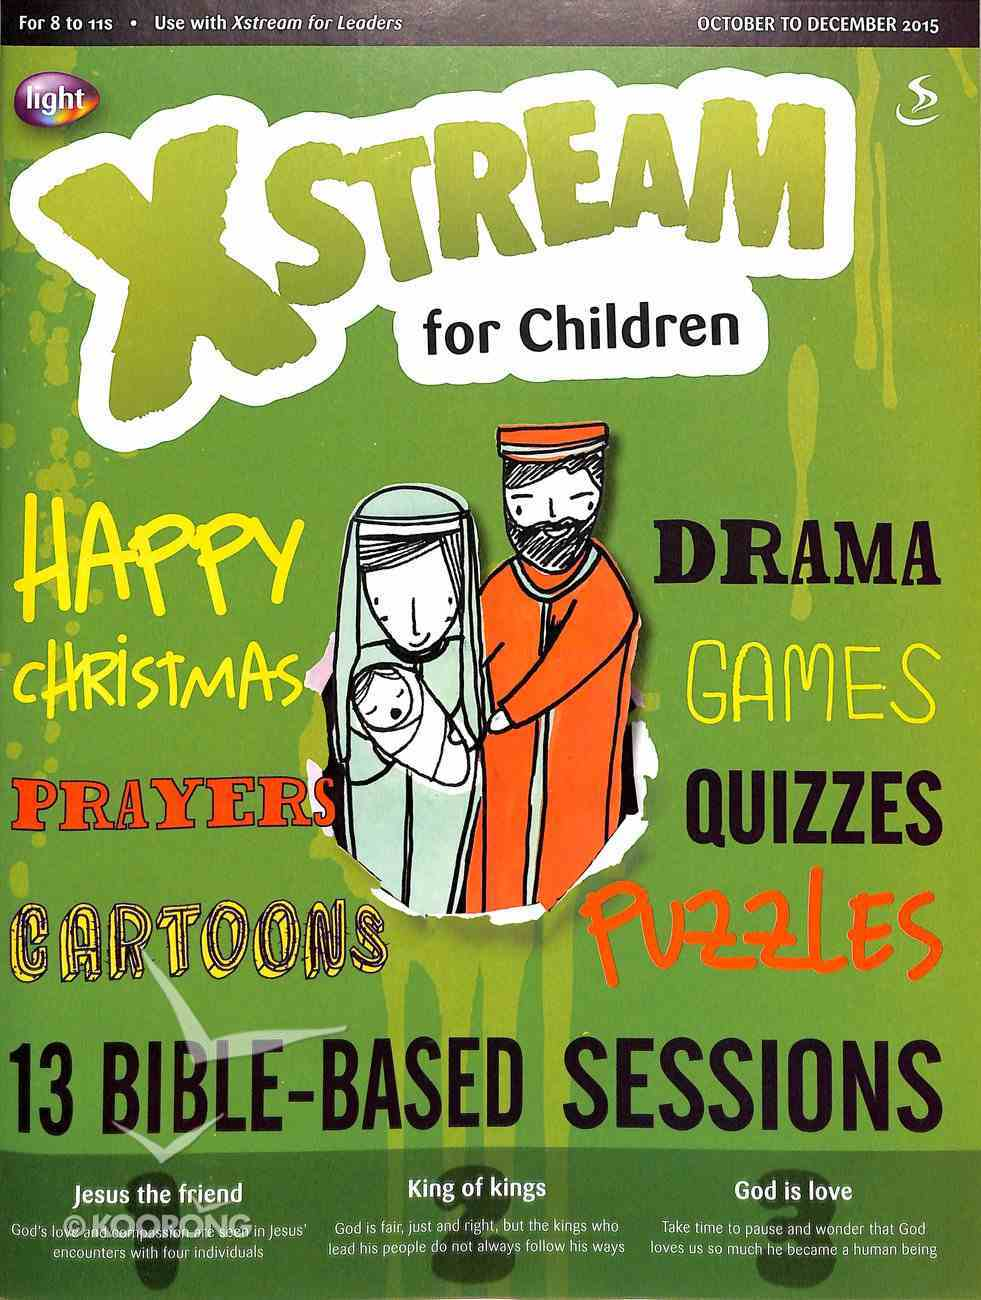 Light: Xstream 2015 #04: Oct-Dec Student's Guide (8-11 Yrs) Paperback